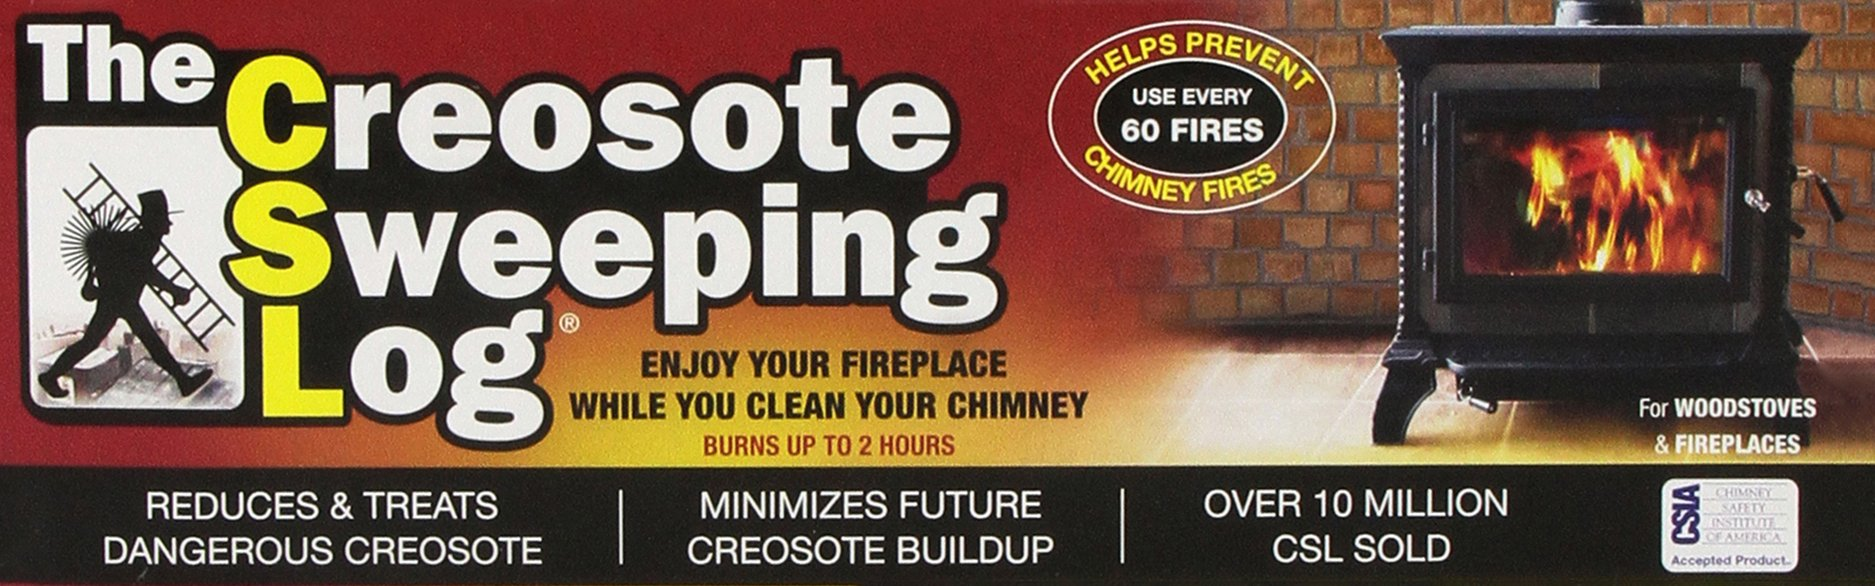 Creosote Sweeping Log for Fireplaces by CSL